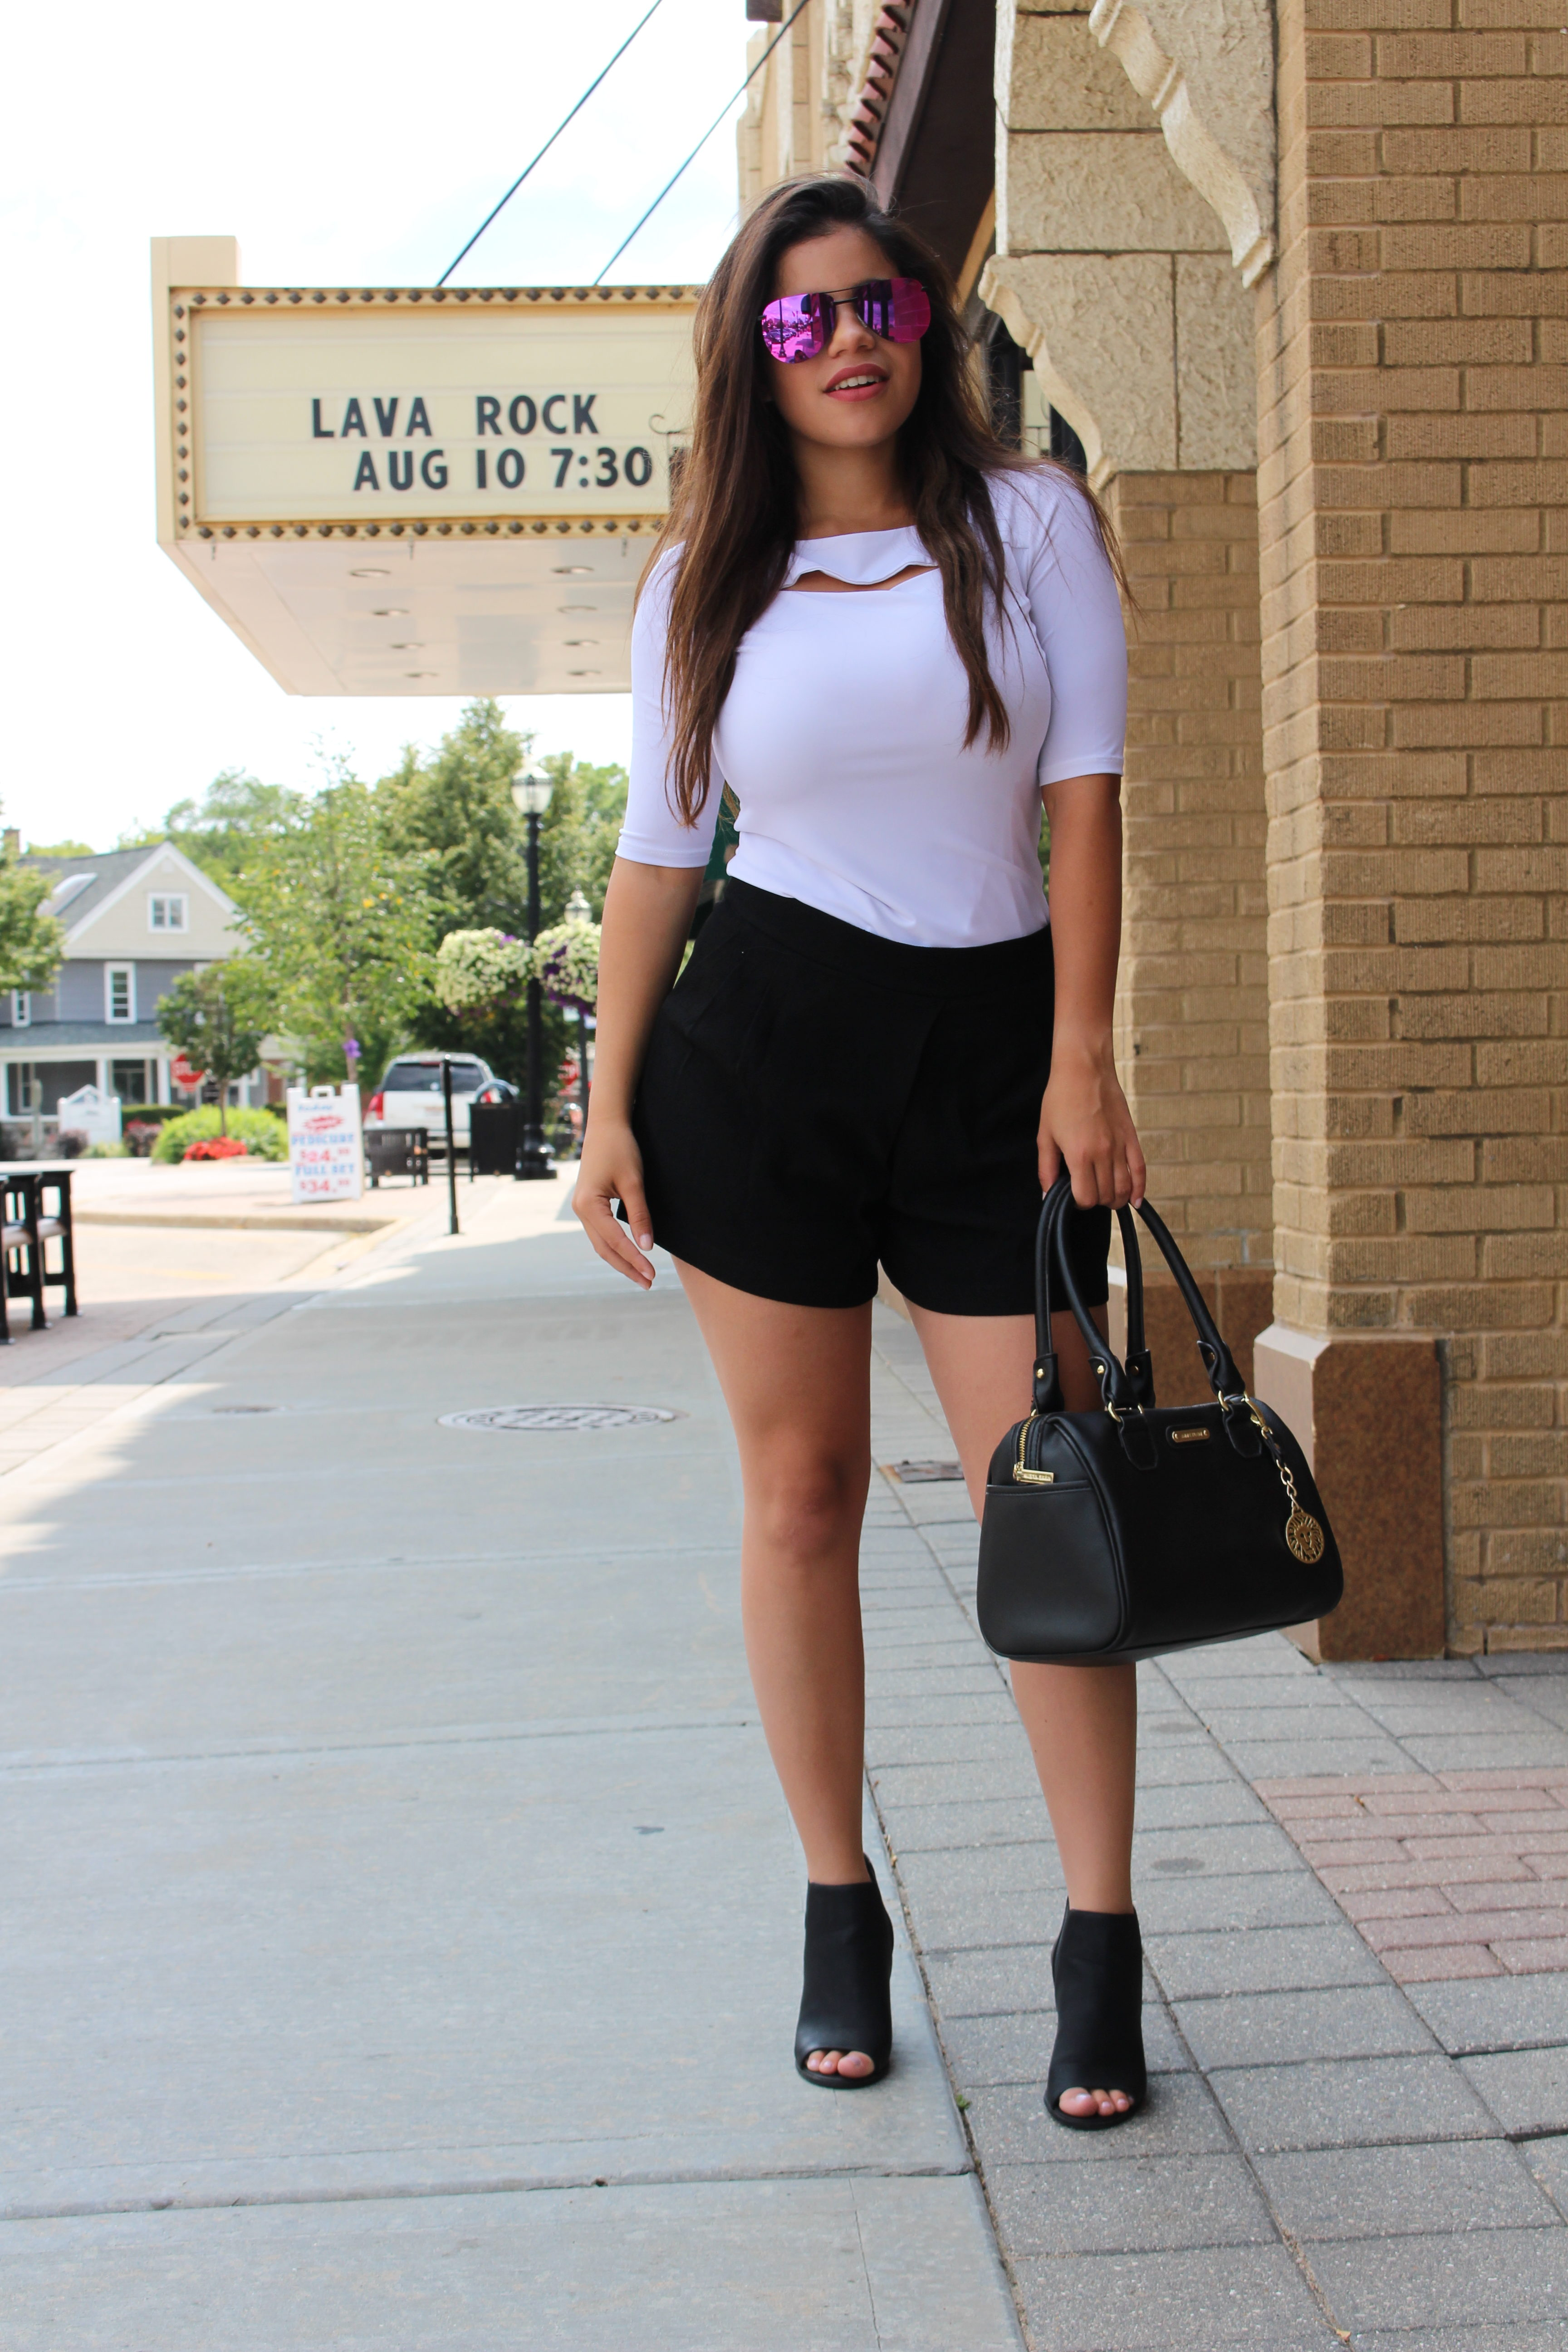 Black and White OOTD ann klein summer casual outfti call it spring shoes quay australia the playa details OOTN date night outfit by Tu Fashion Petite Alejandra Avila